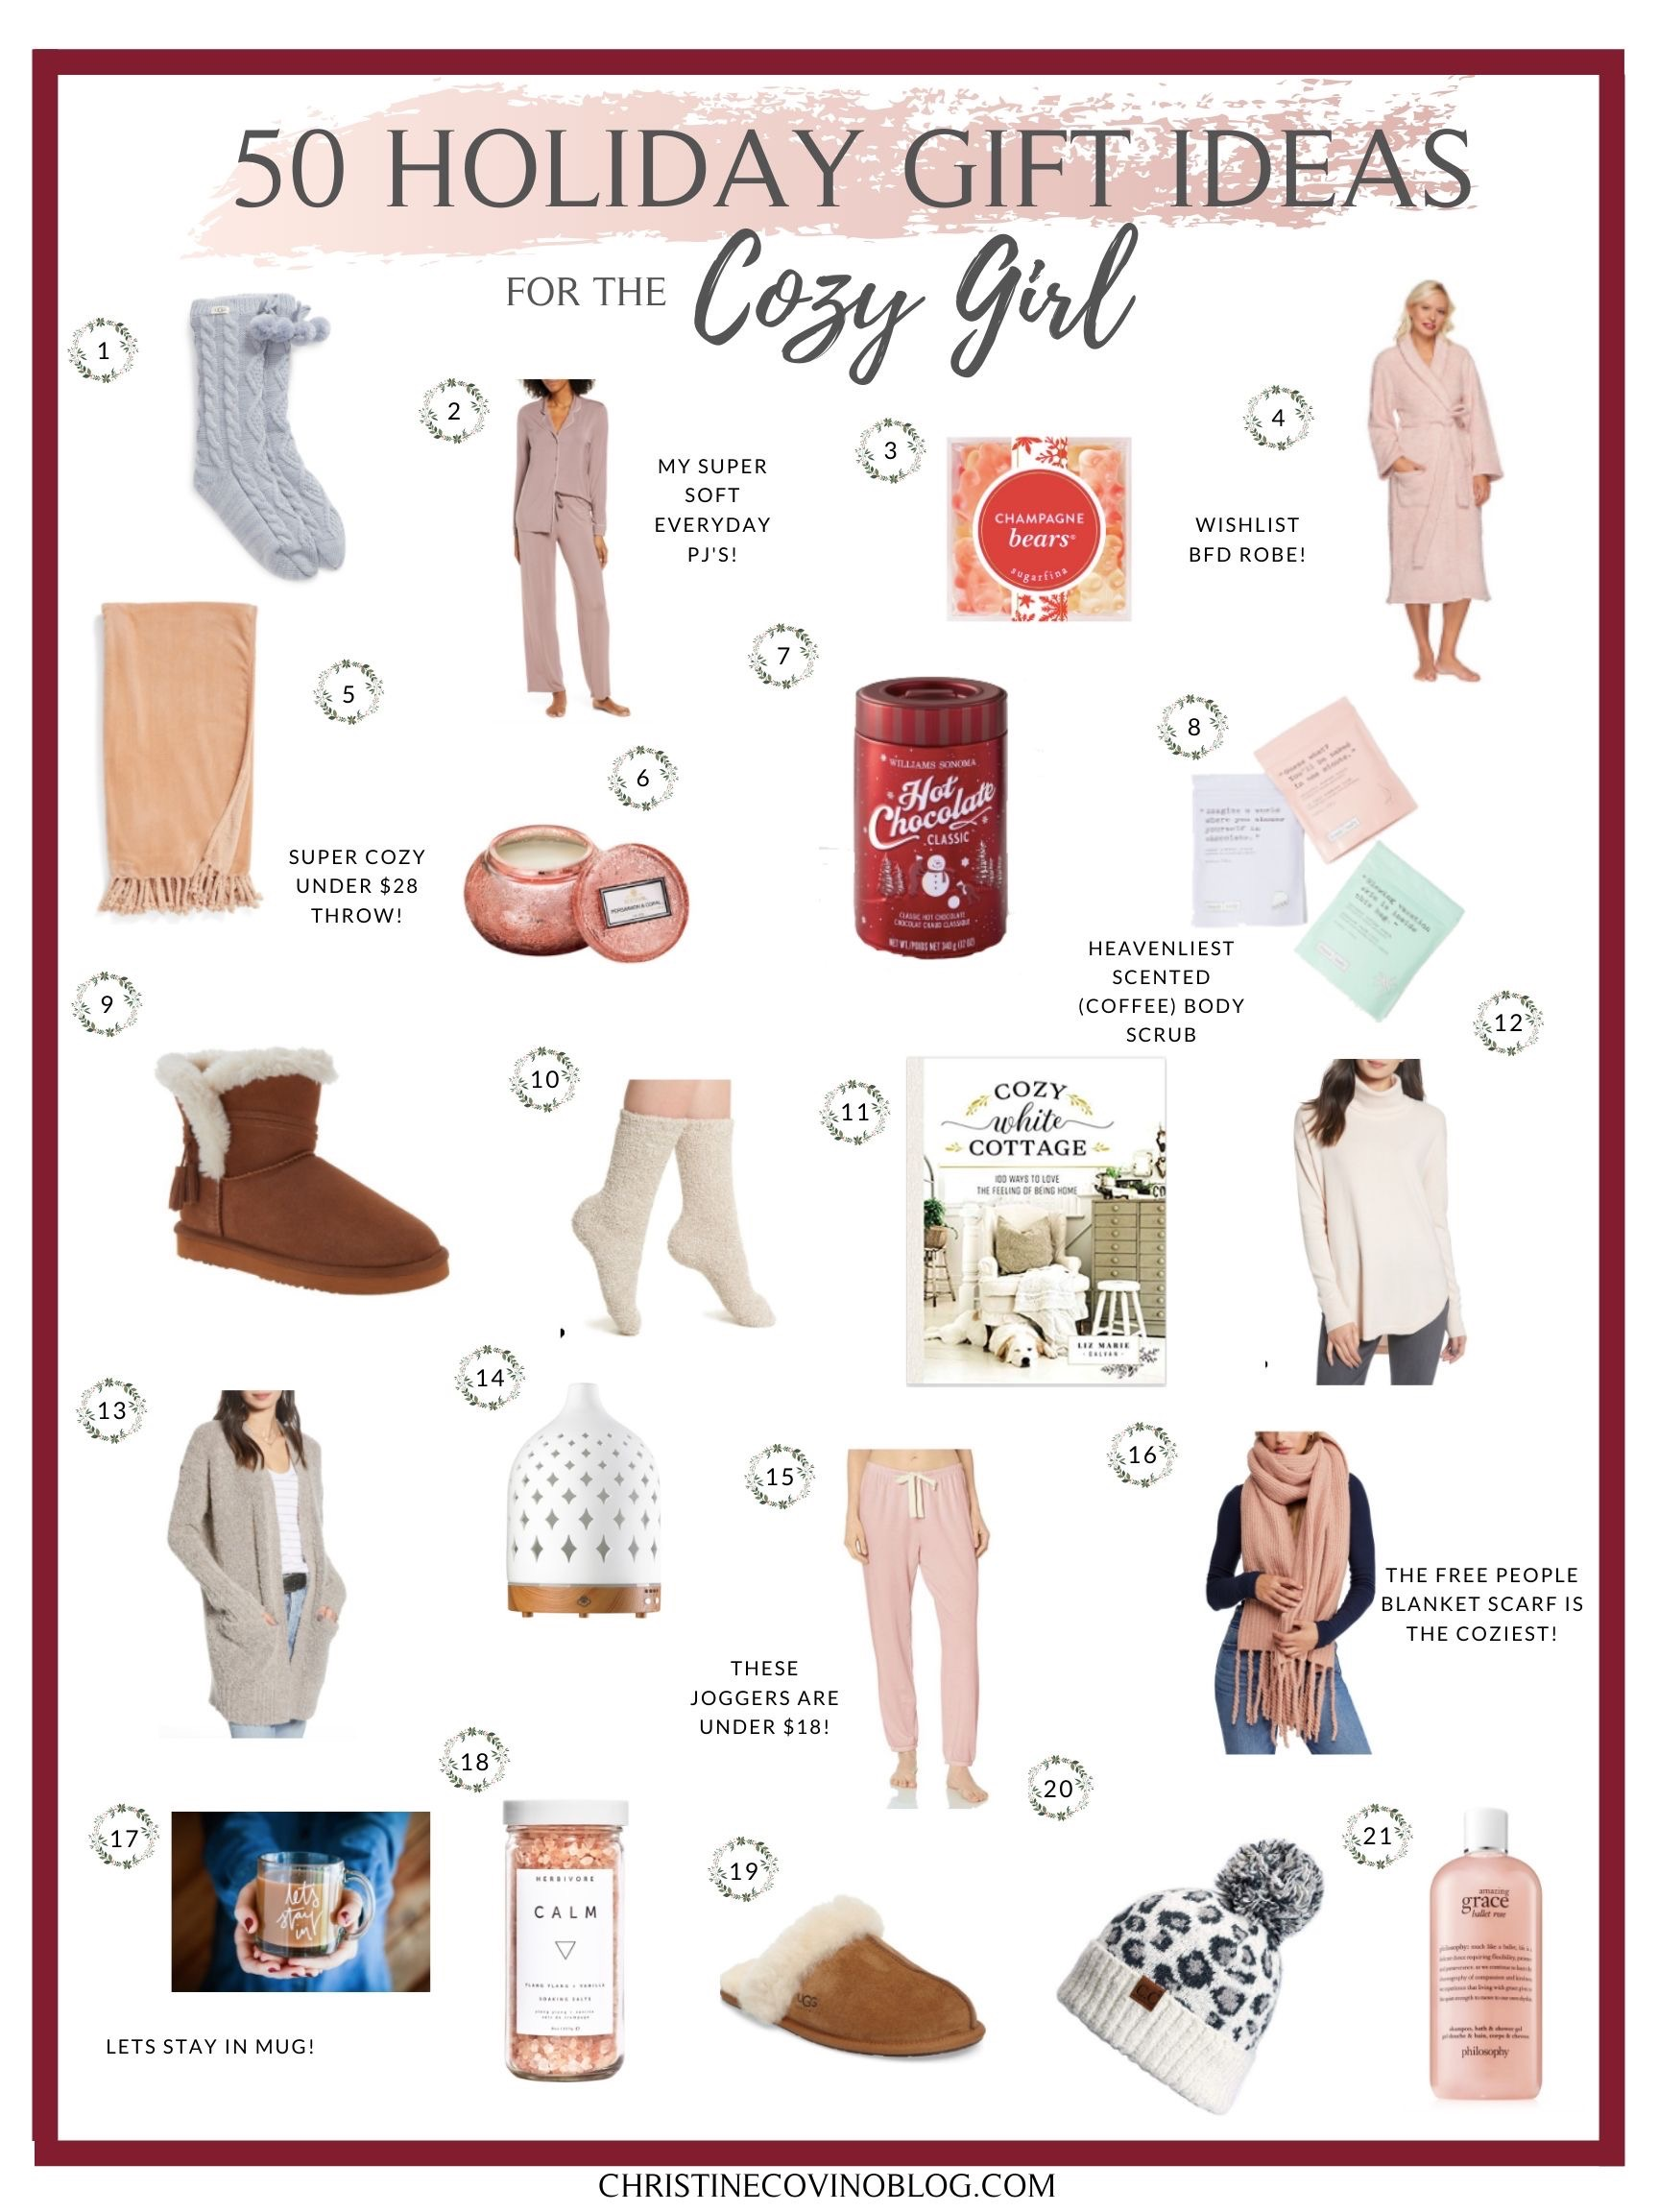 Gift Ideas for the Cozy Girl- Soft and cozy things that make you warm and fuzzy